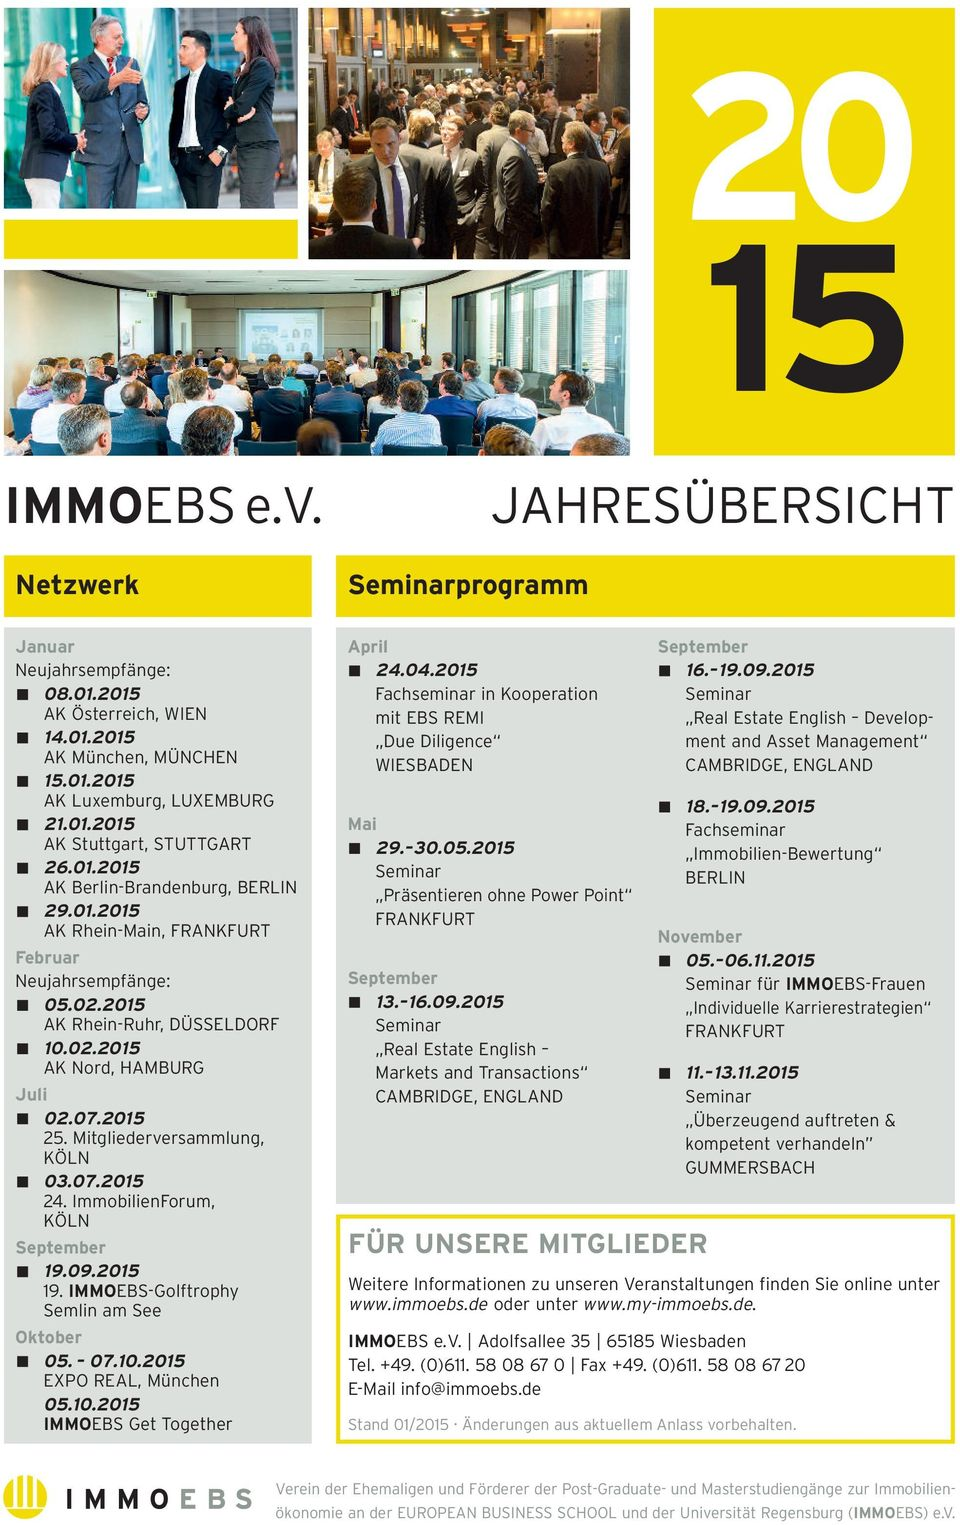 Mitgliederversammlung, KÖLN 03.07.2015 24. ImmobilienForum, KÖLN September 19.09.2015 19. IMMOEBS-Golftrophy Semlin am See Oktober 05. 07.10.2015 EXPO REAL, München 05.10.2015 IMMOEBS Get Together April 24.